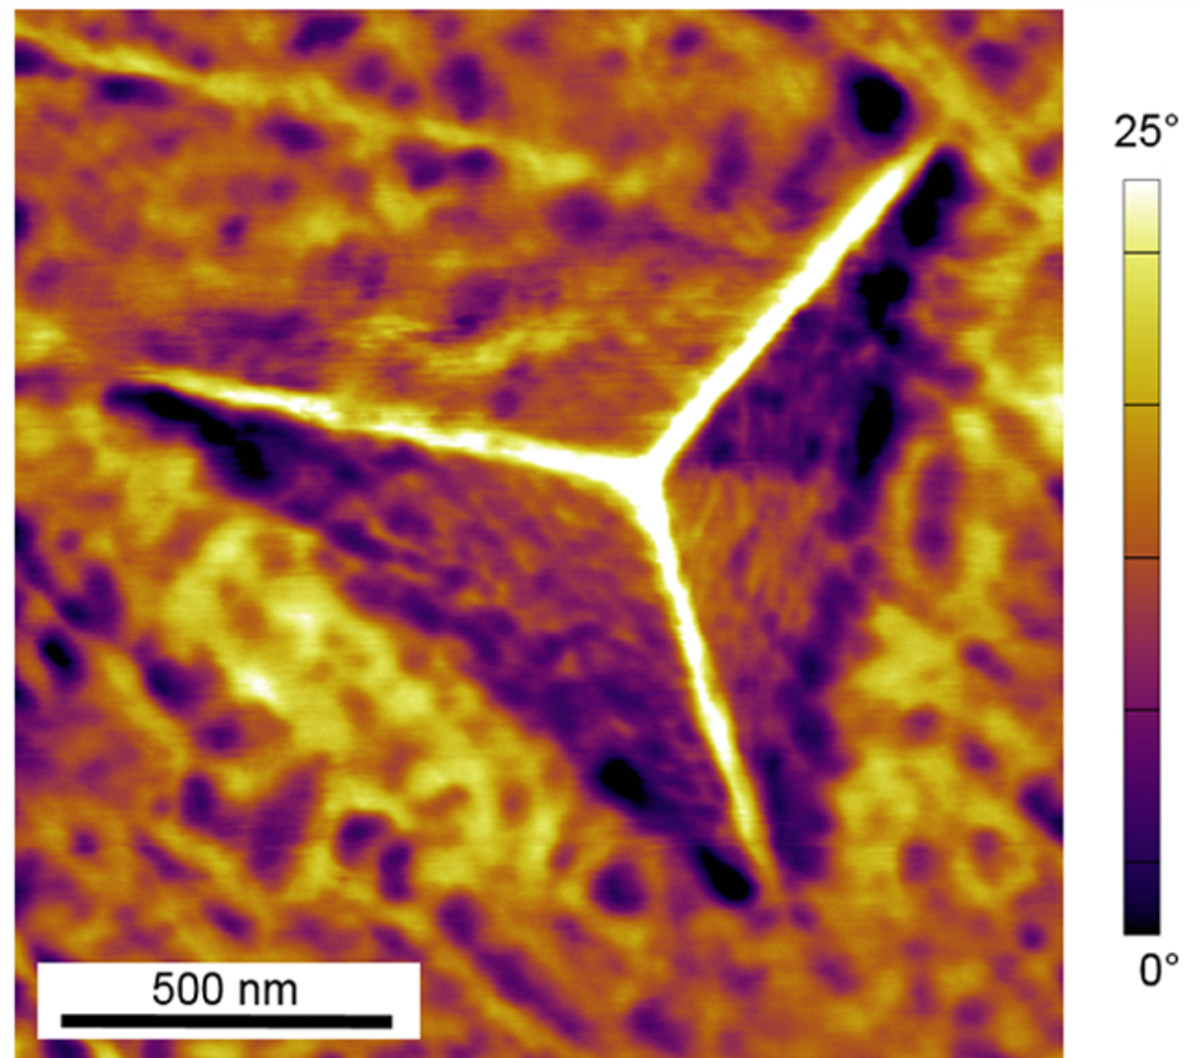 Atomic force microscope image of a residual indent.